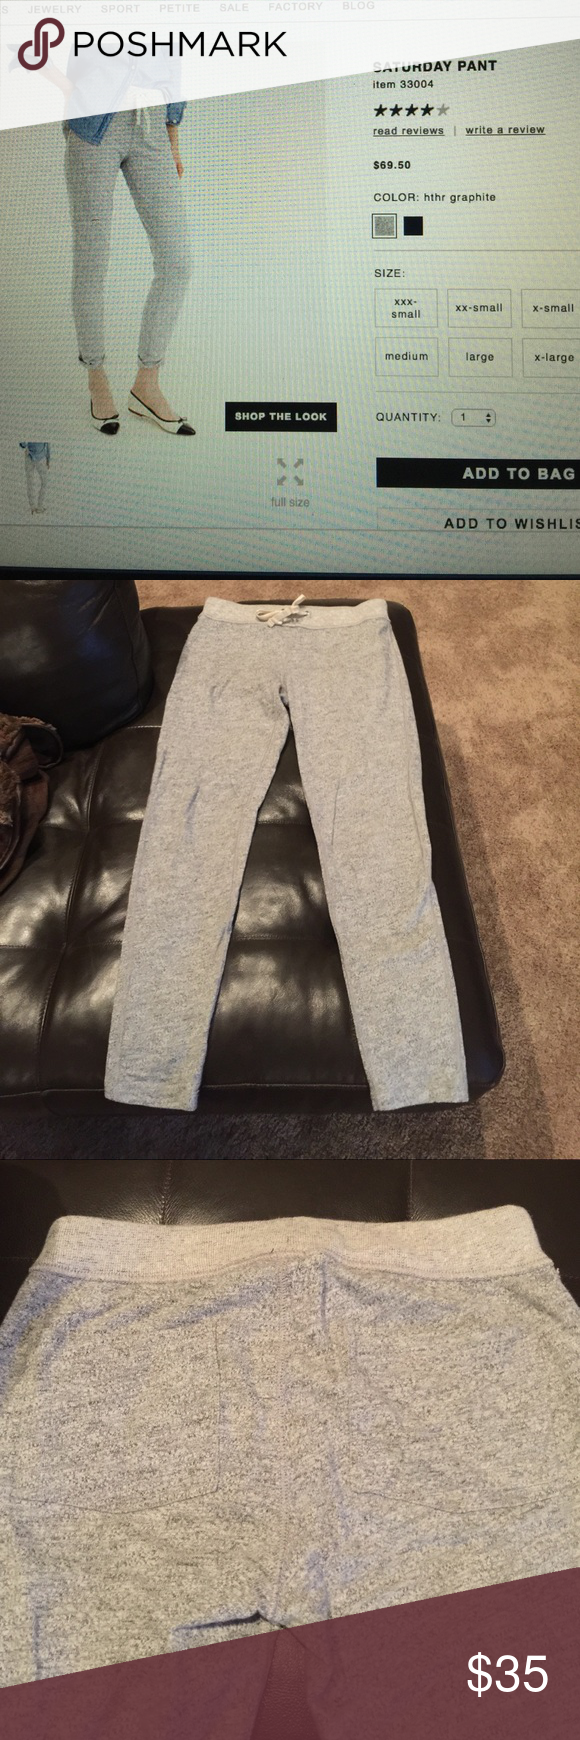 J Crew Saturday pant. In excellent condition. J Crew sweatpants in light grey.  Excellent condition,  worn and washed only once. Two back pockets J. Crew Pants Track Pants & Joggers